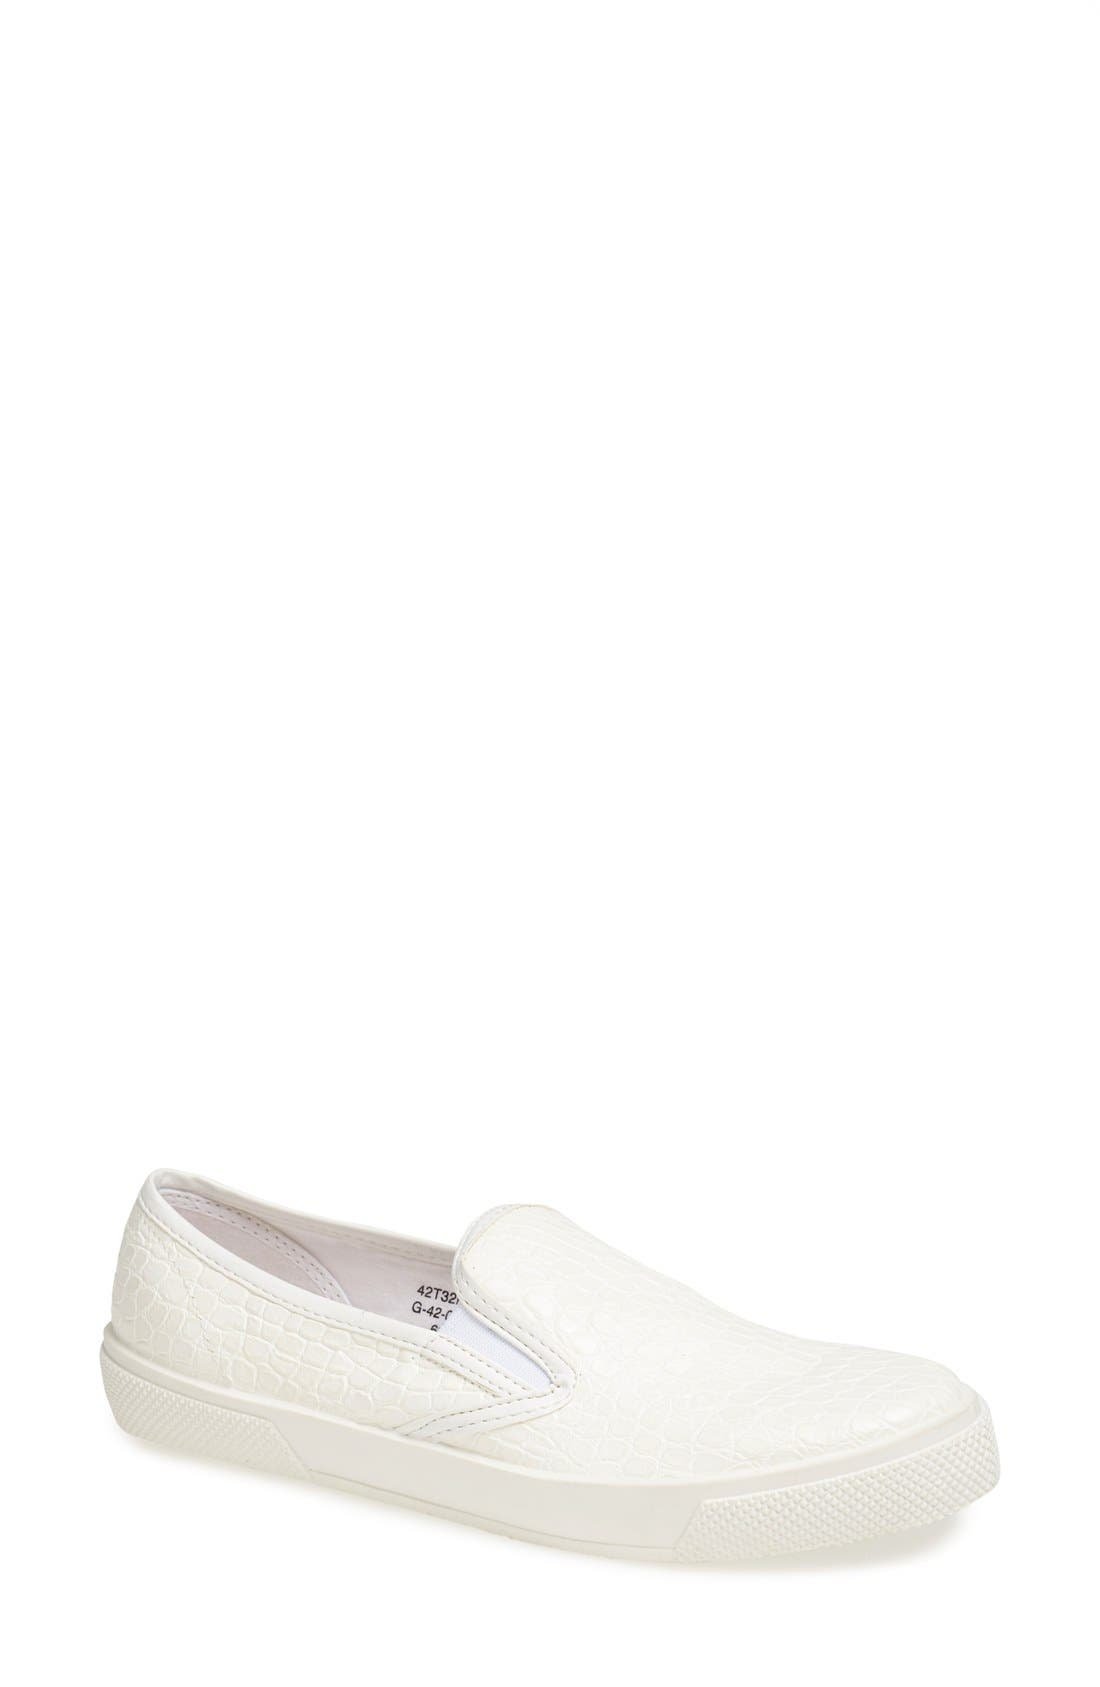 Alternate Image 1 Selected - Topshop 'Tika2' Croc Embossed Slip-On